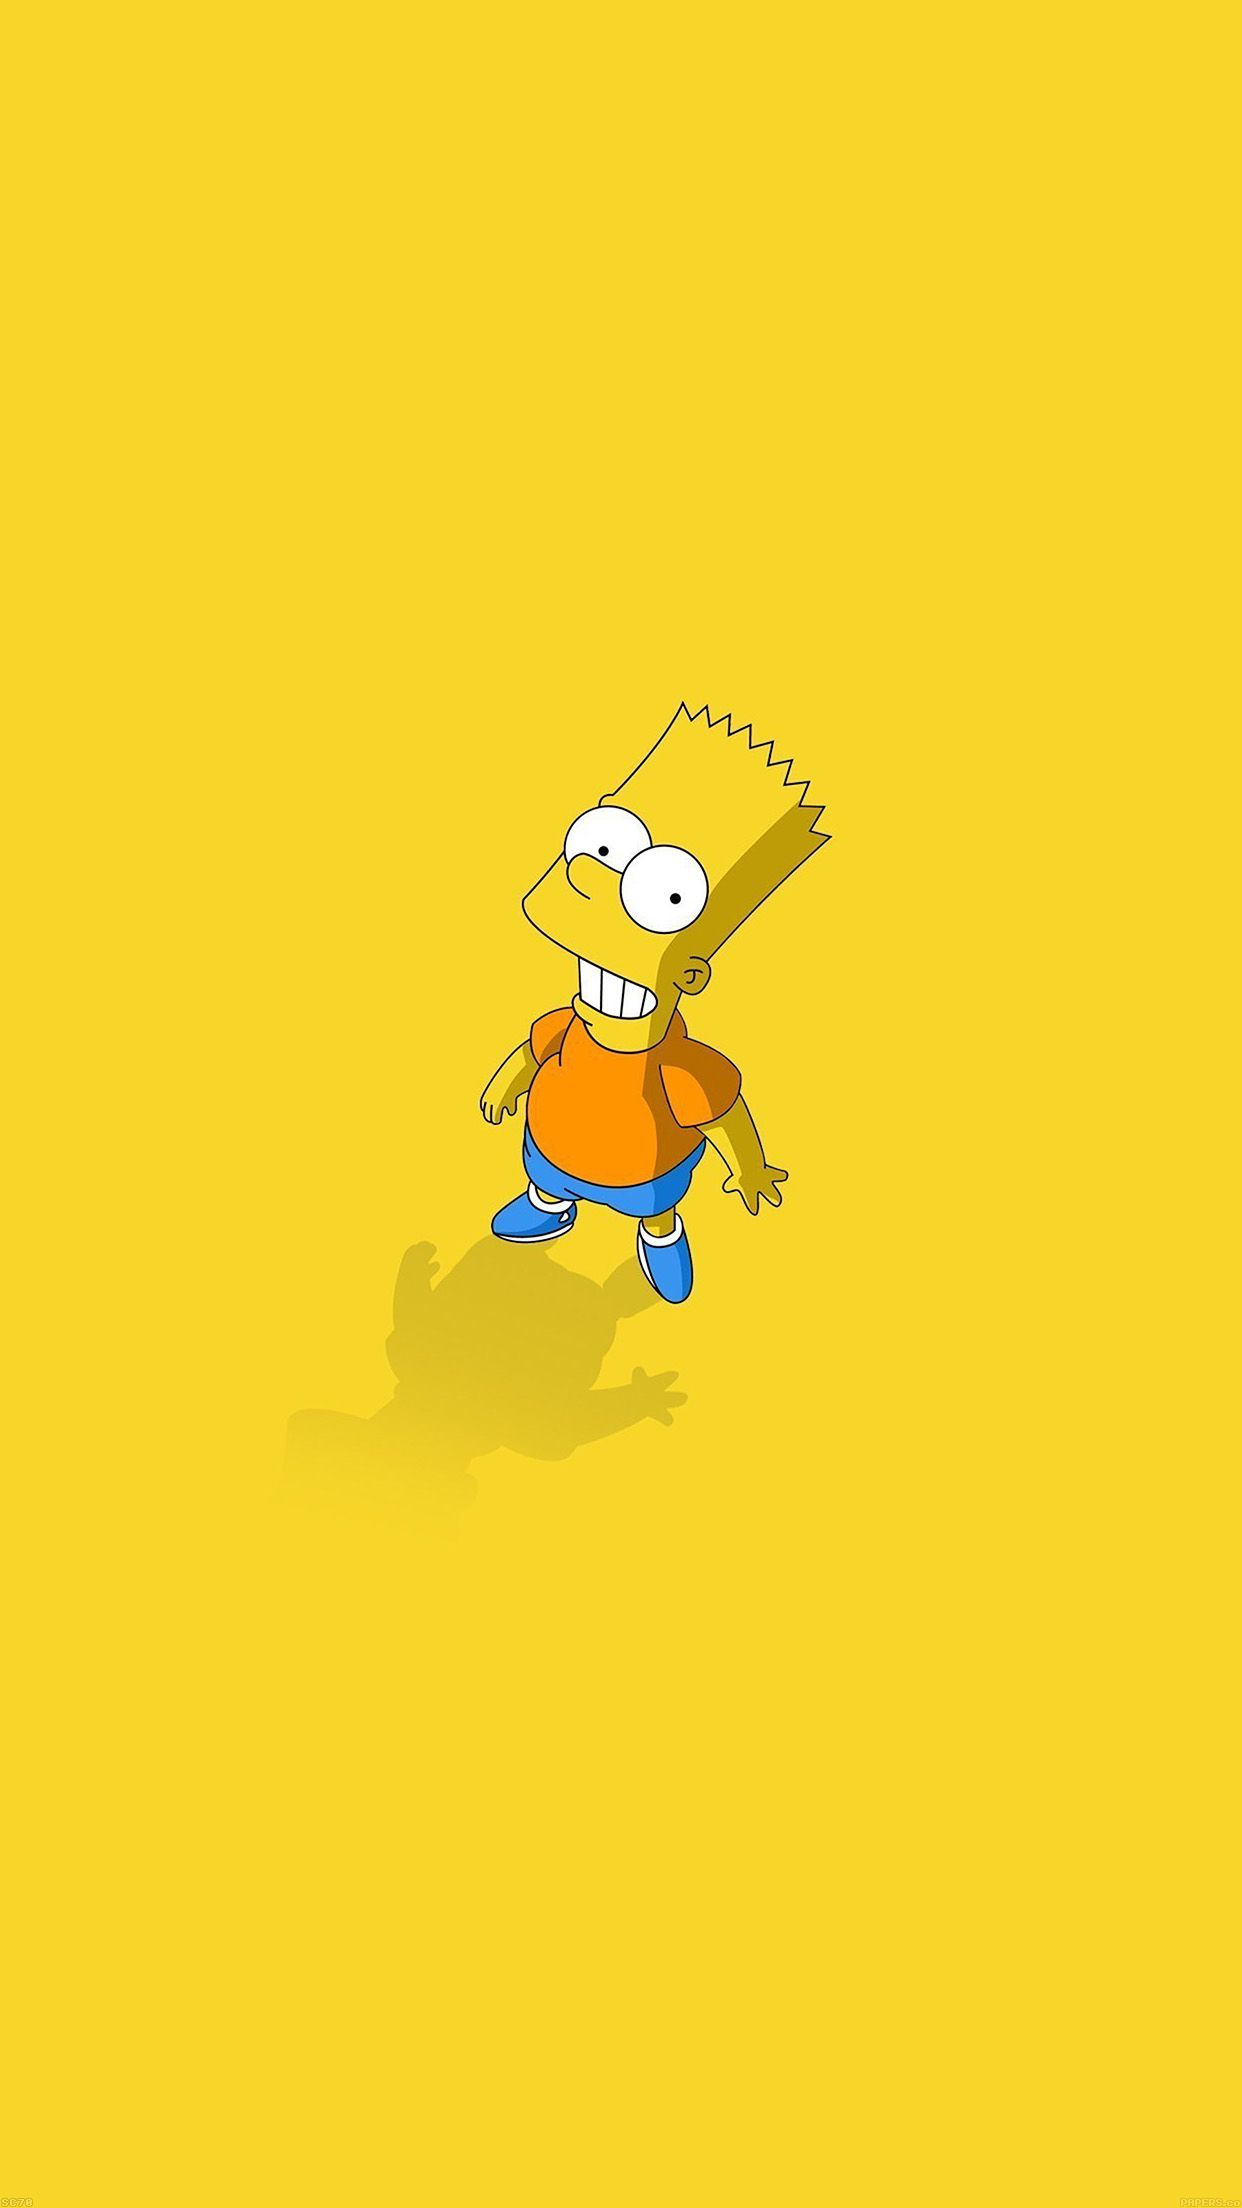 Simpsons Wallpaper For Bedroom Most Popular The Simpsons Pictures And Sites Totally From And For